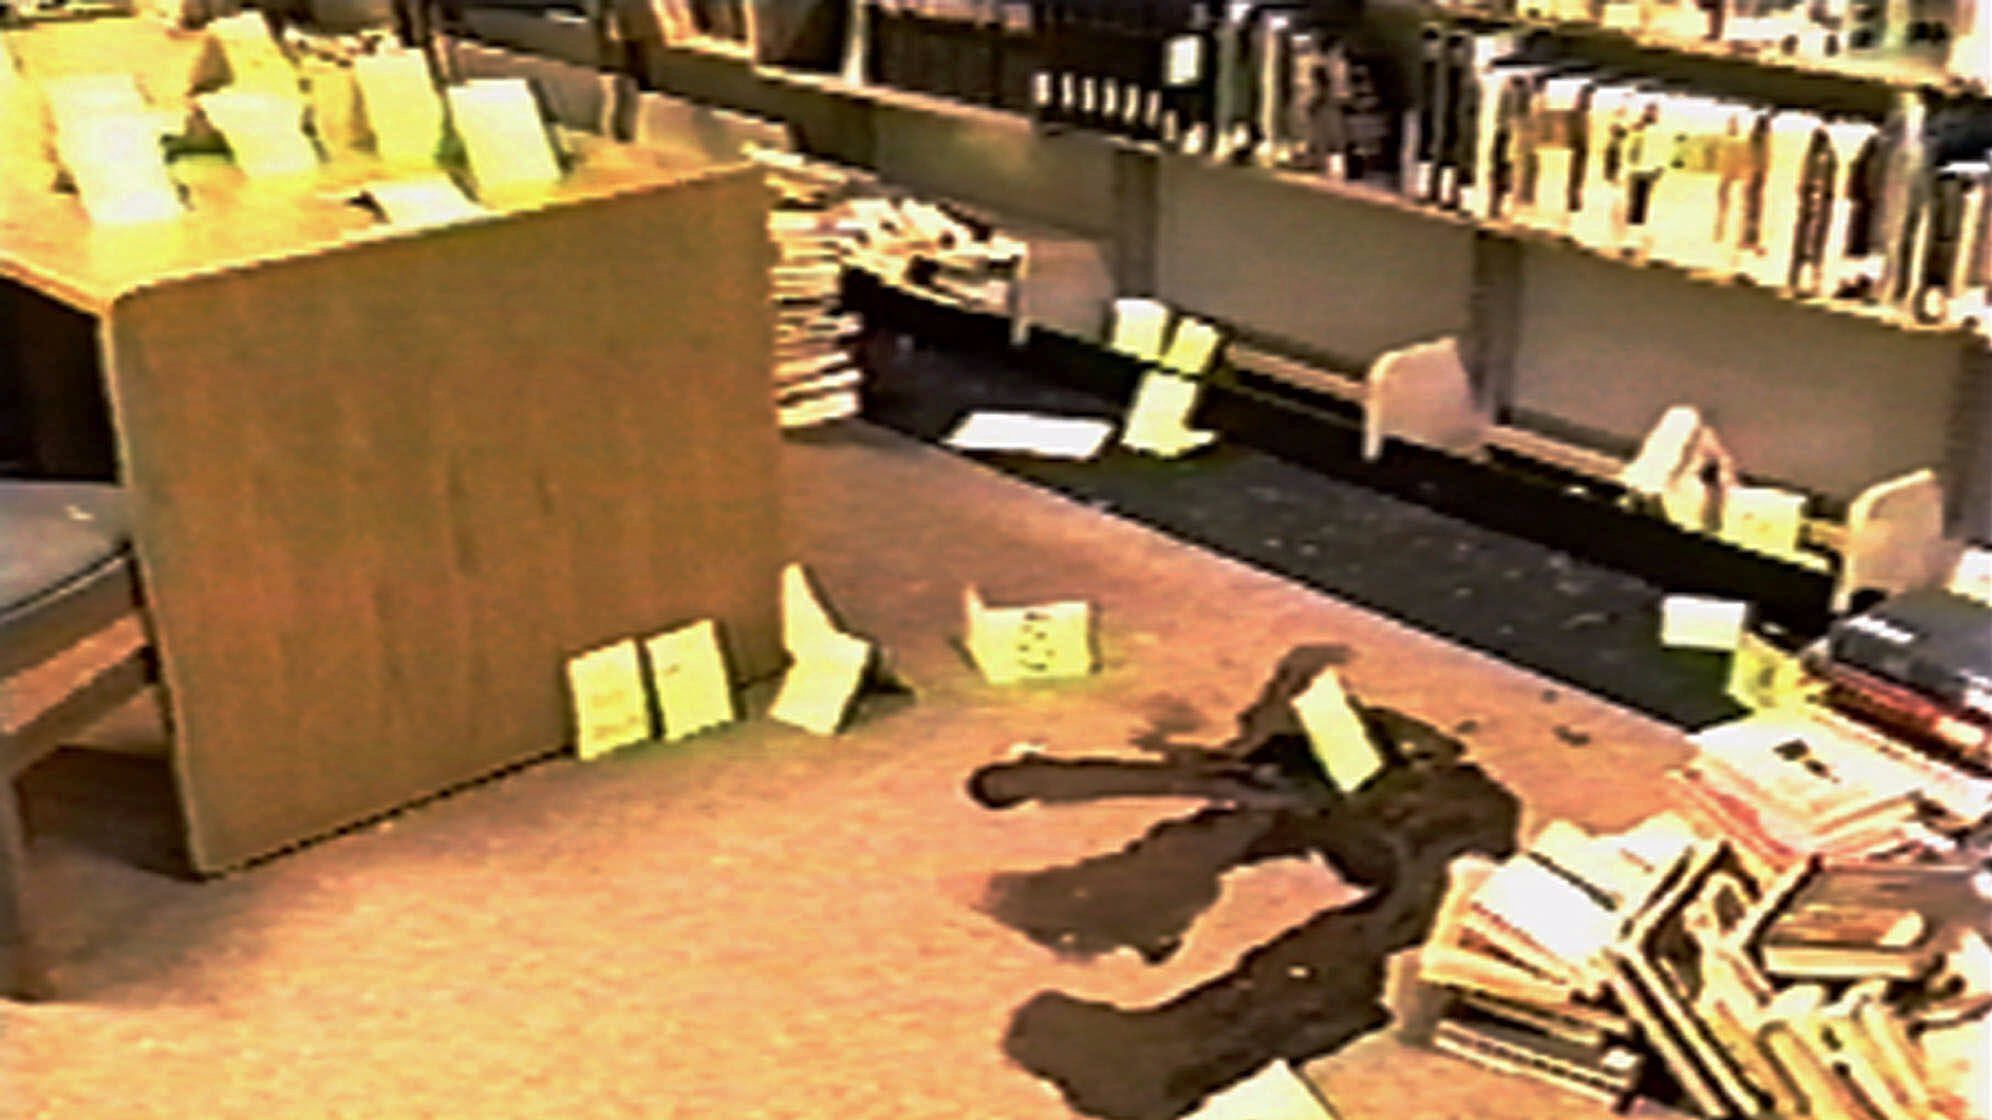 An image from a video shows the scene of the 1999 massacre at Columbine High School in Colorado.